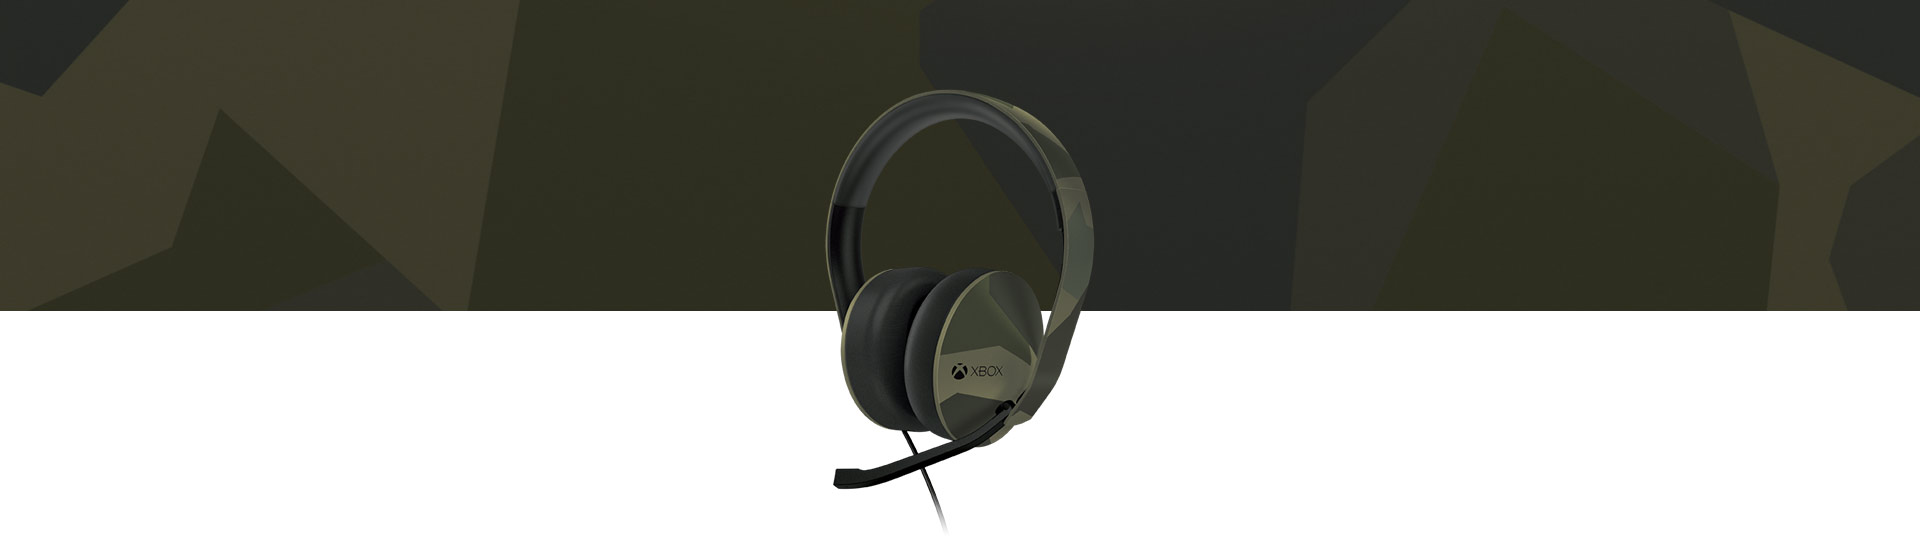 Xbox One Special Edition Armed Forces Stereo-Headset